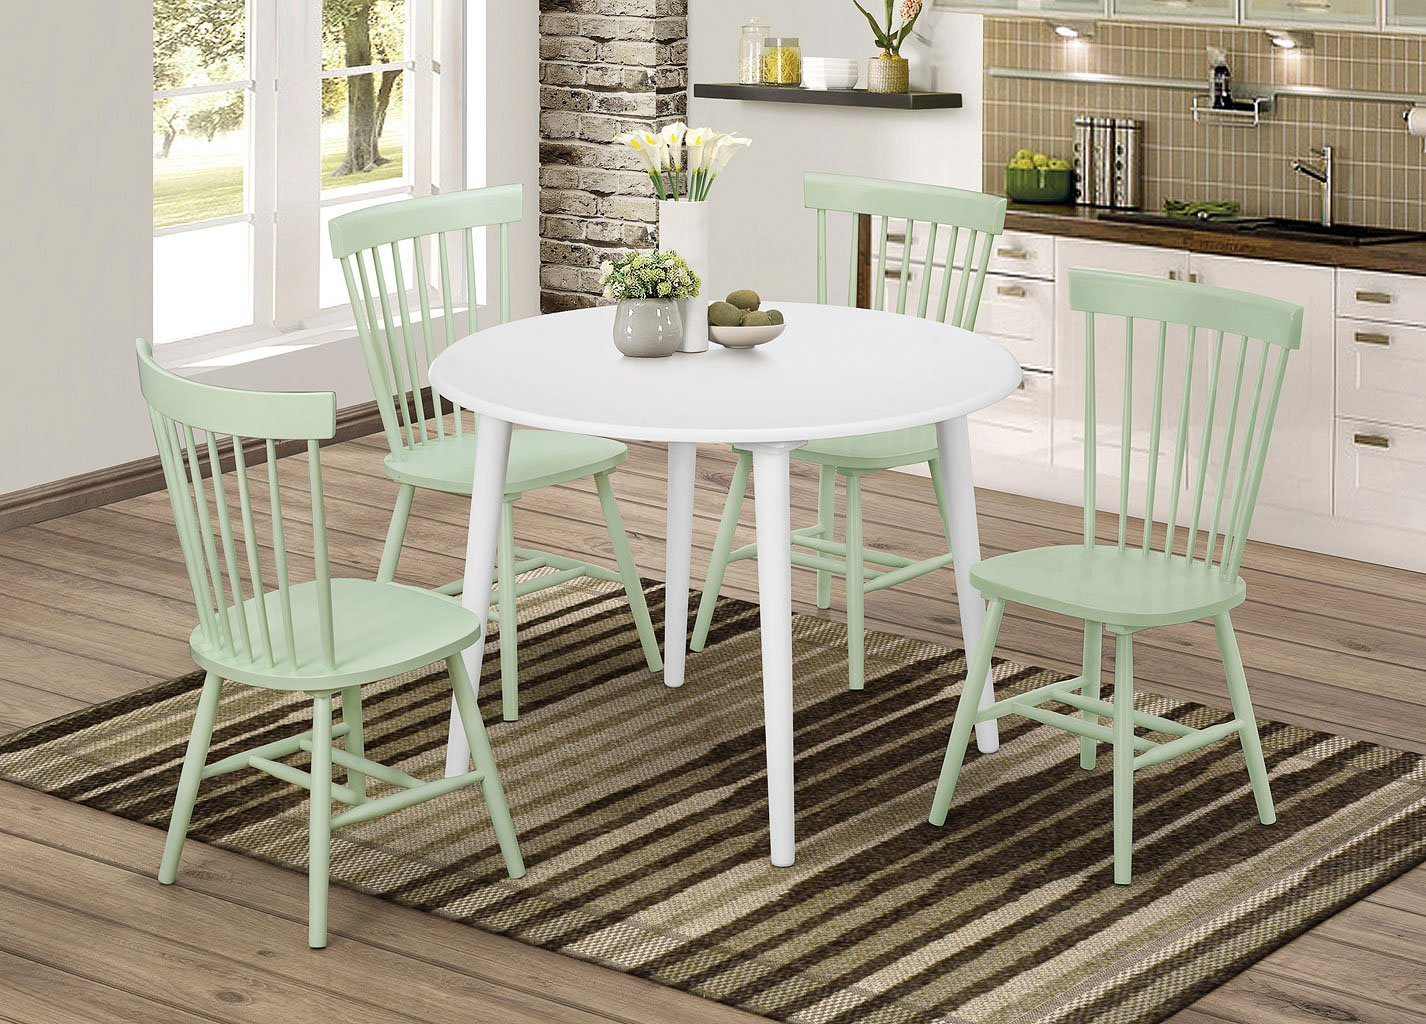 Emmett Round Dining Room Set W/ Mint Green Chairs Coaster ...